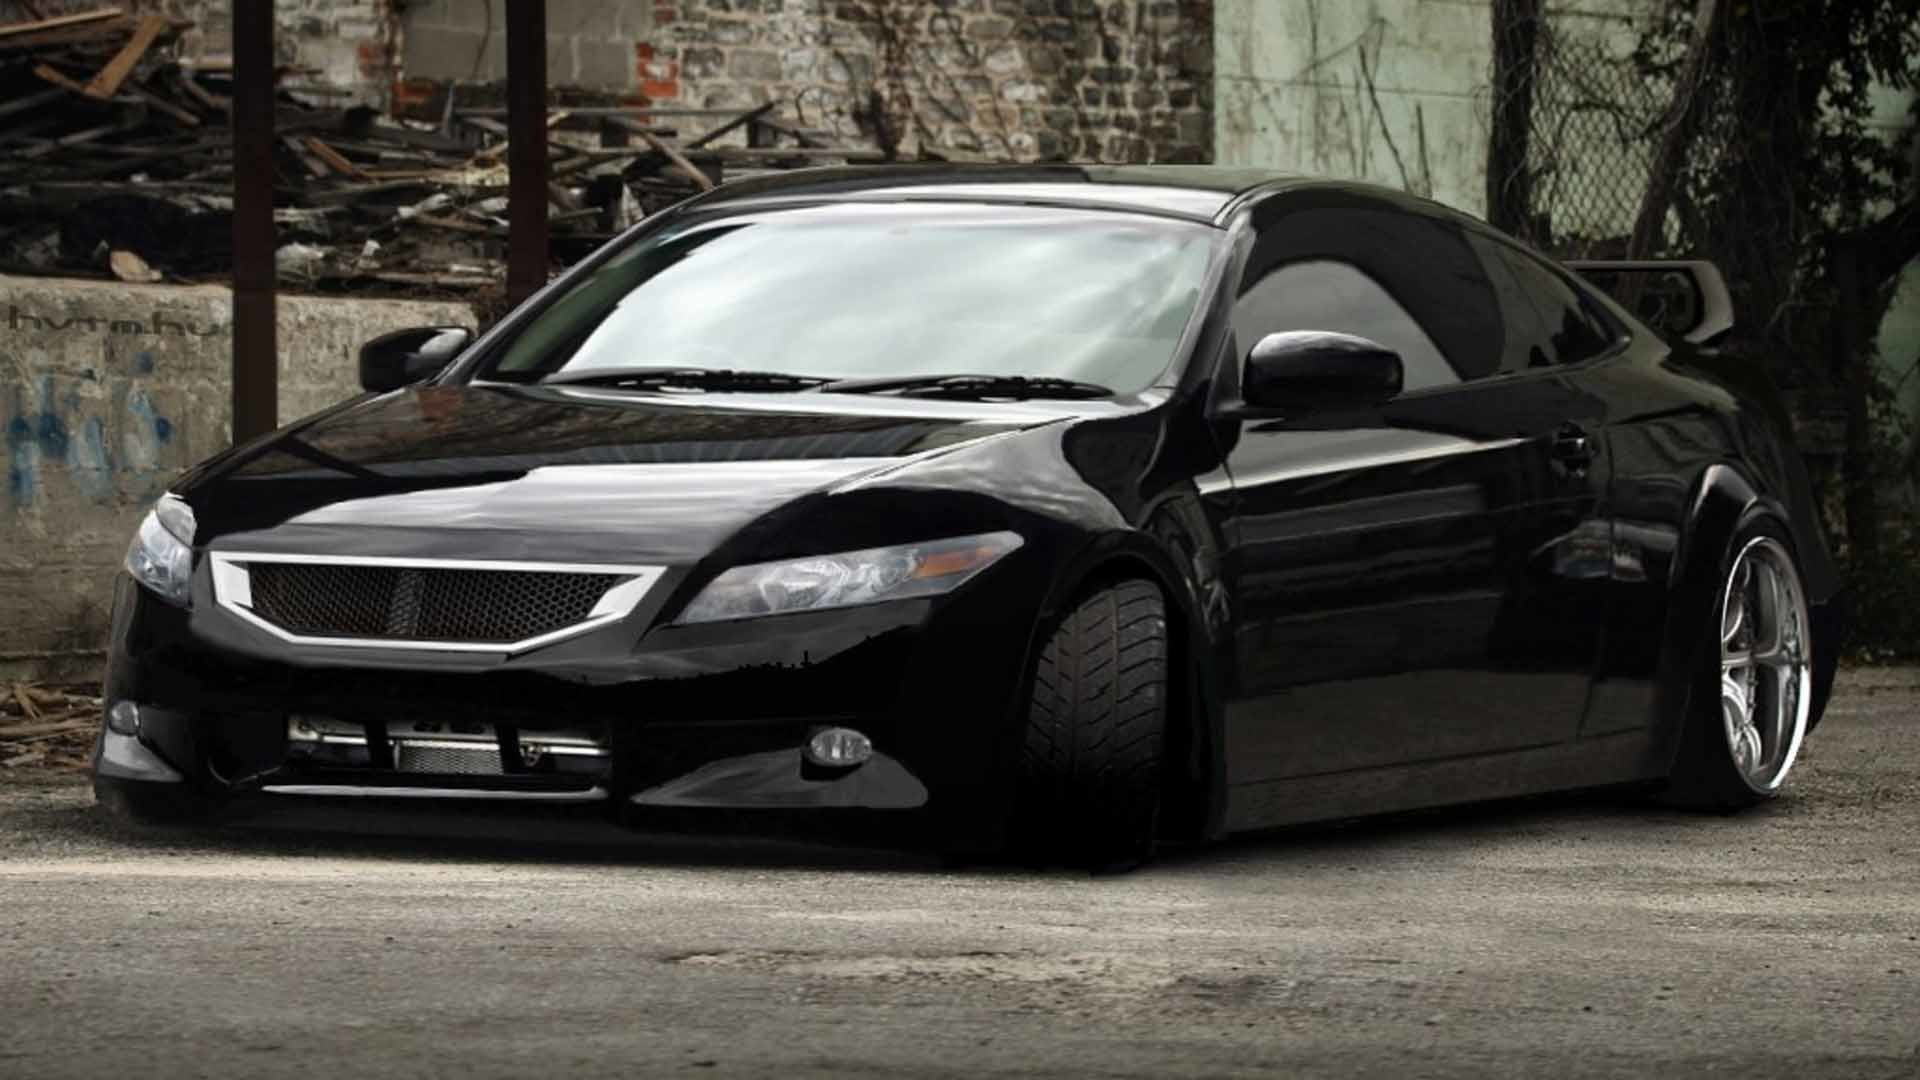 Black Honda Civic Wallpaper 5586 Hd Wallpapers in Cars – Imagesci.com